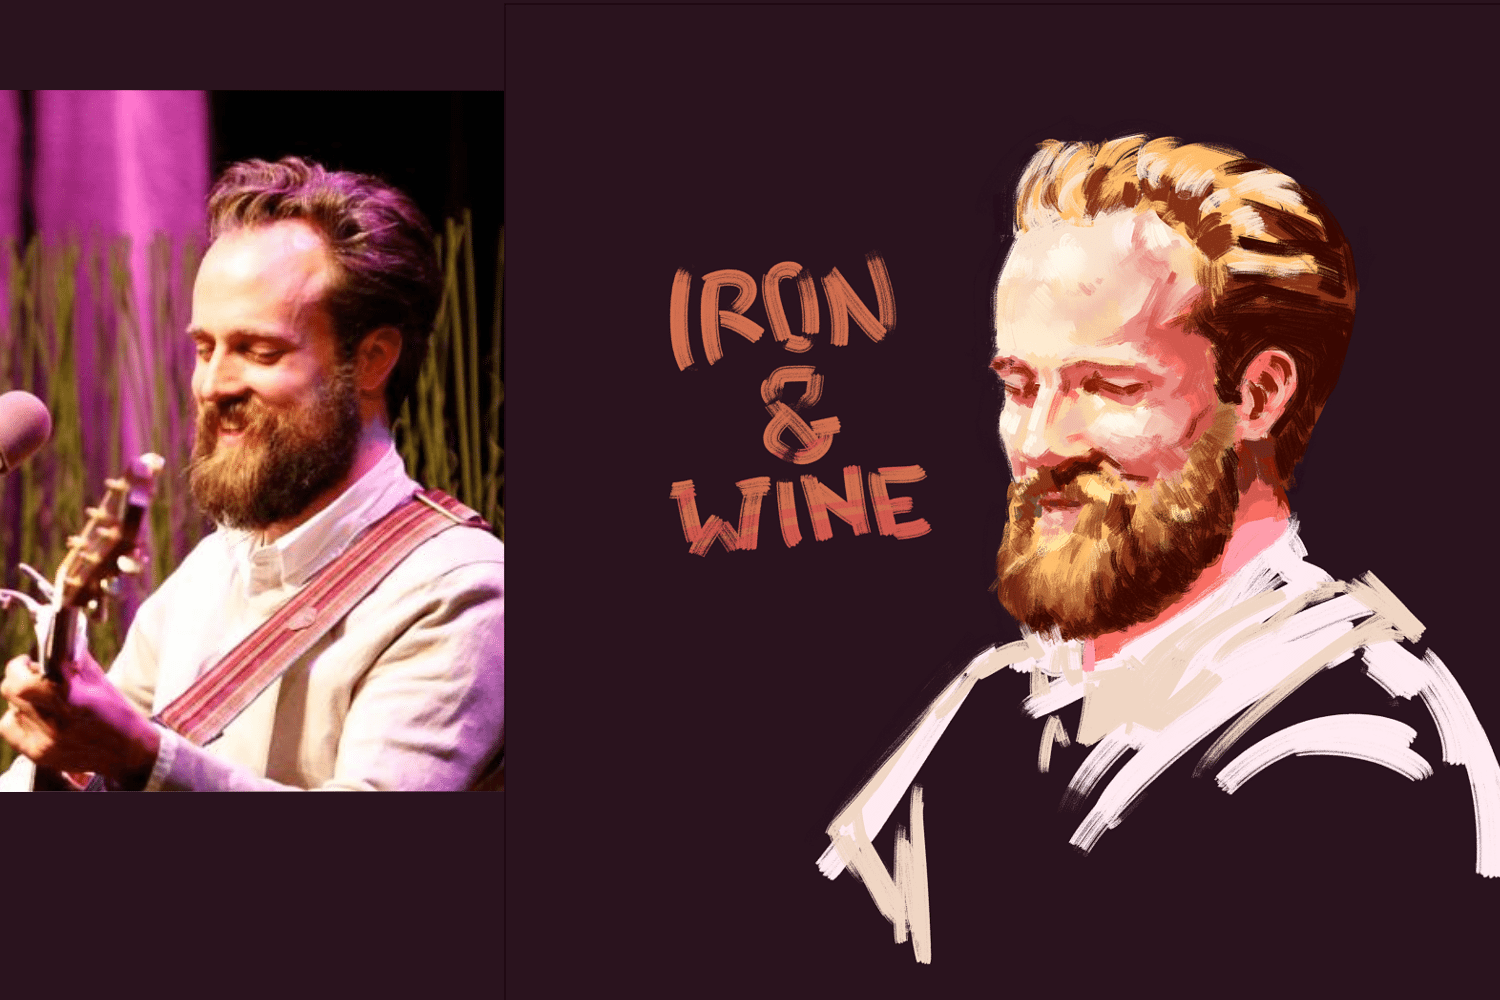 Iron and Wine Portrait by Diogonen